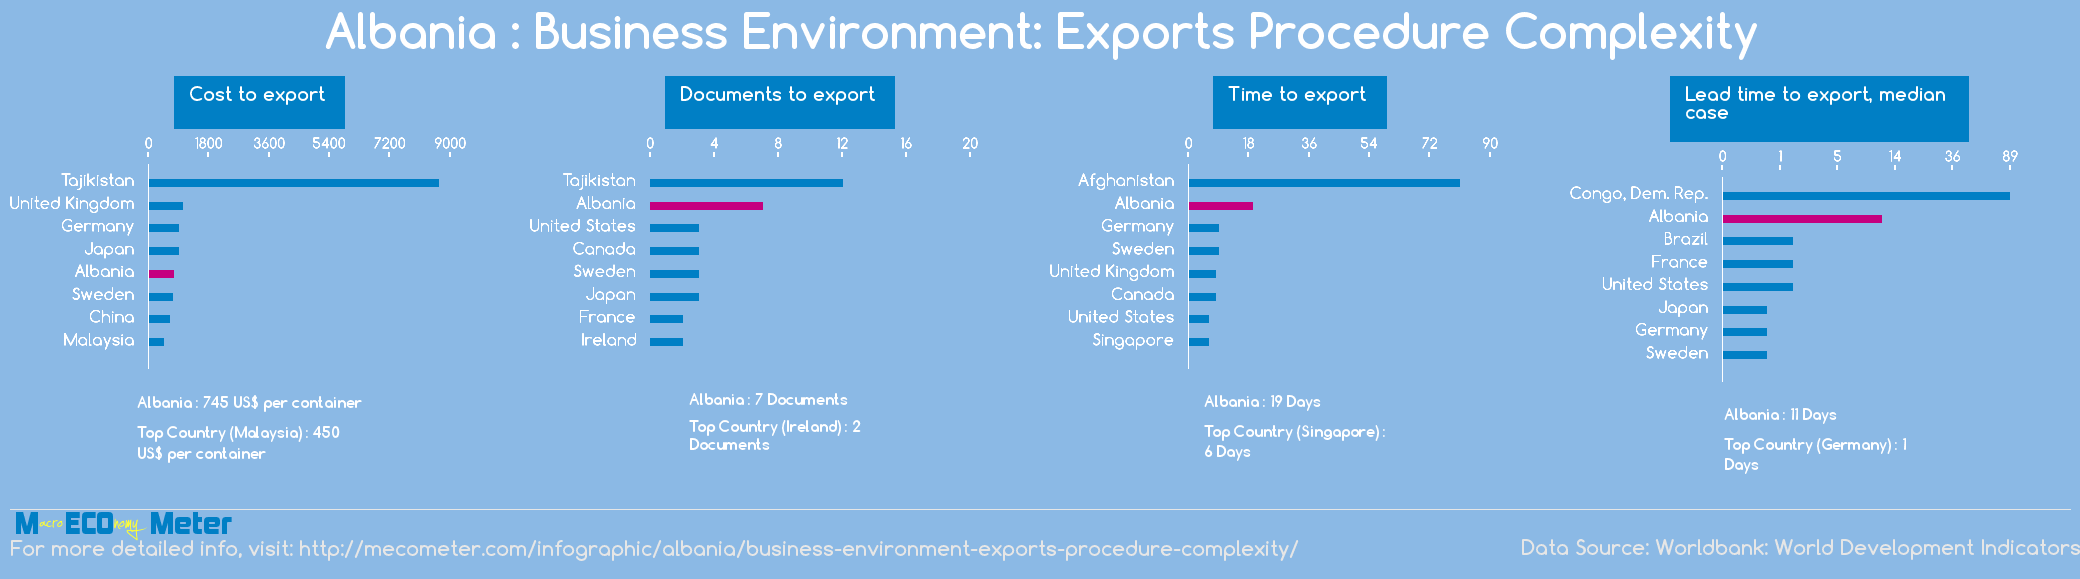 Albania : Business Environment: Exports Procedure Complexity